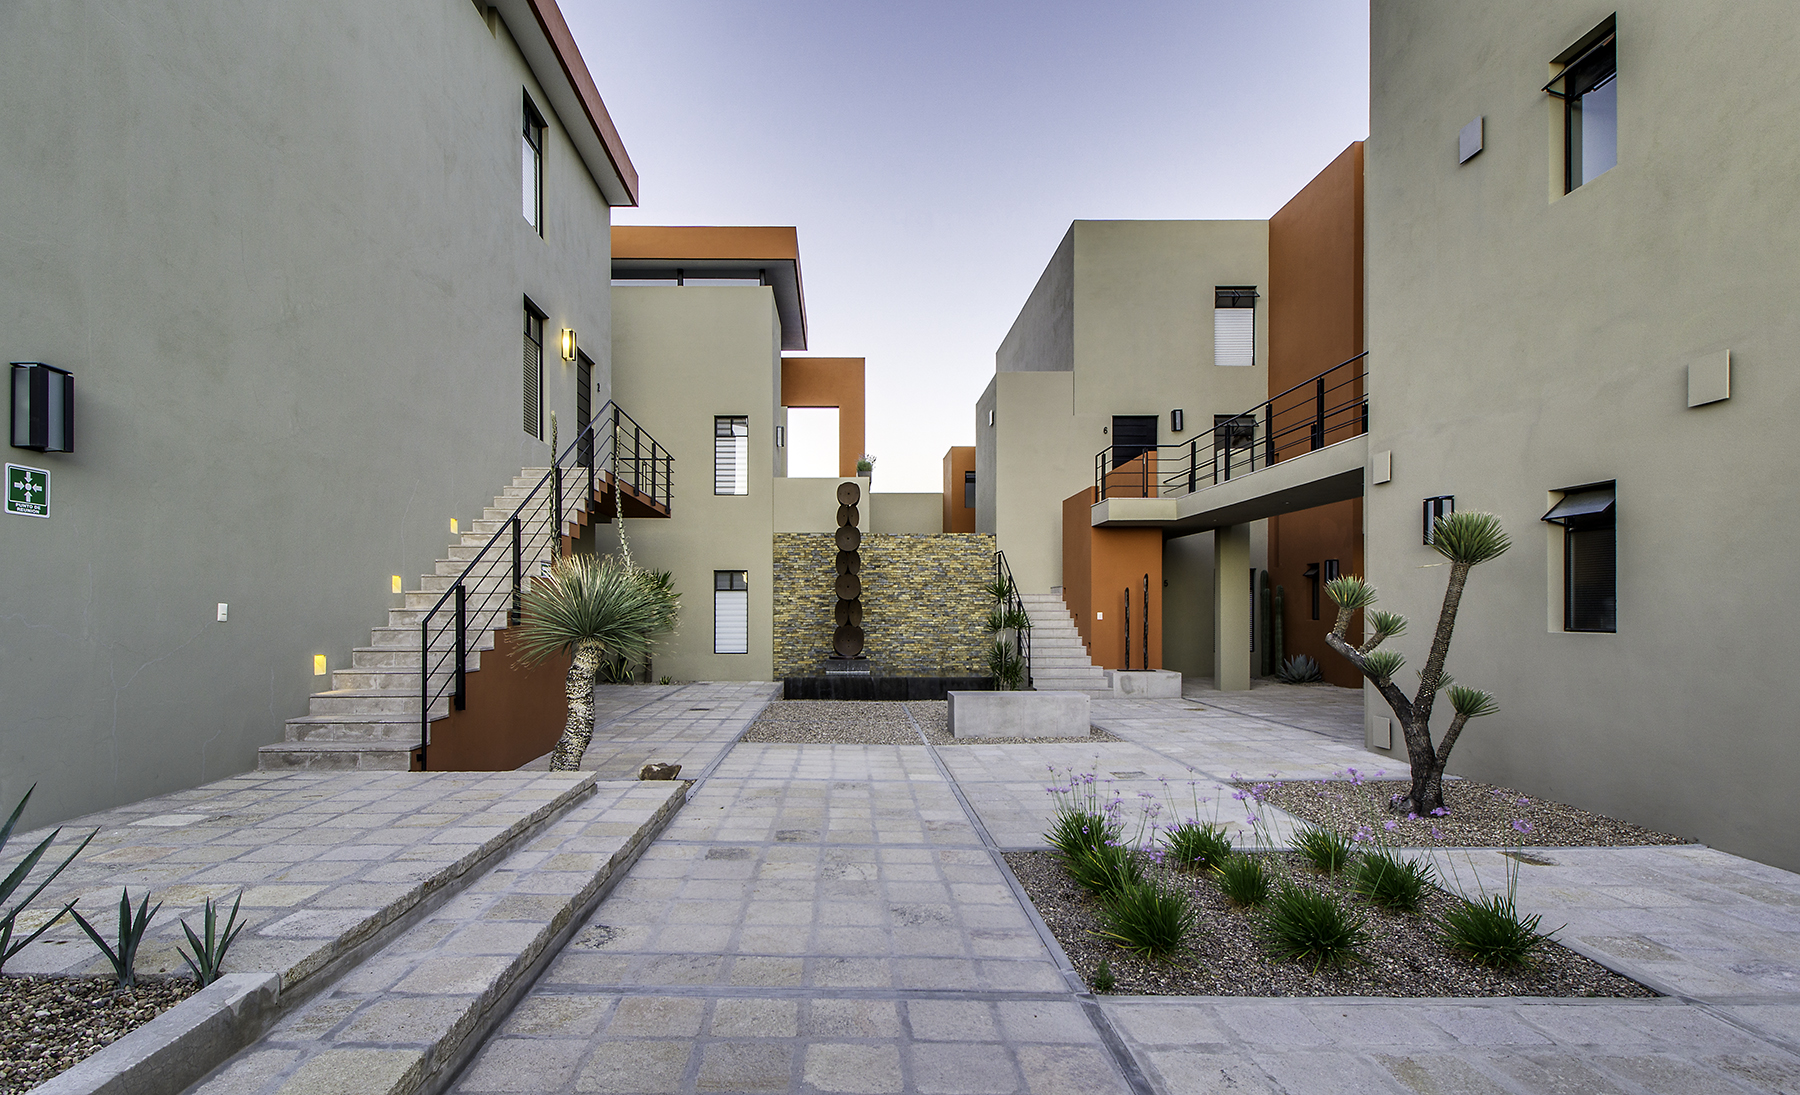 Single Family Home for Sale at CASA CHIMAL San Antonio, San Miguel De Allende, Guanajuato Mexico